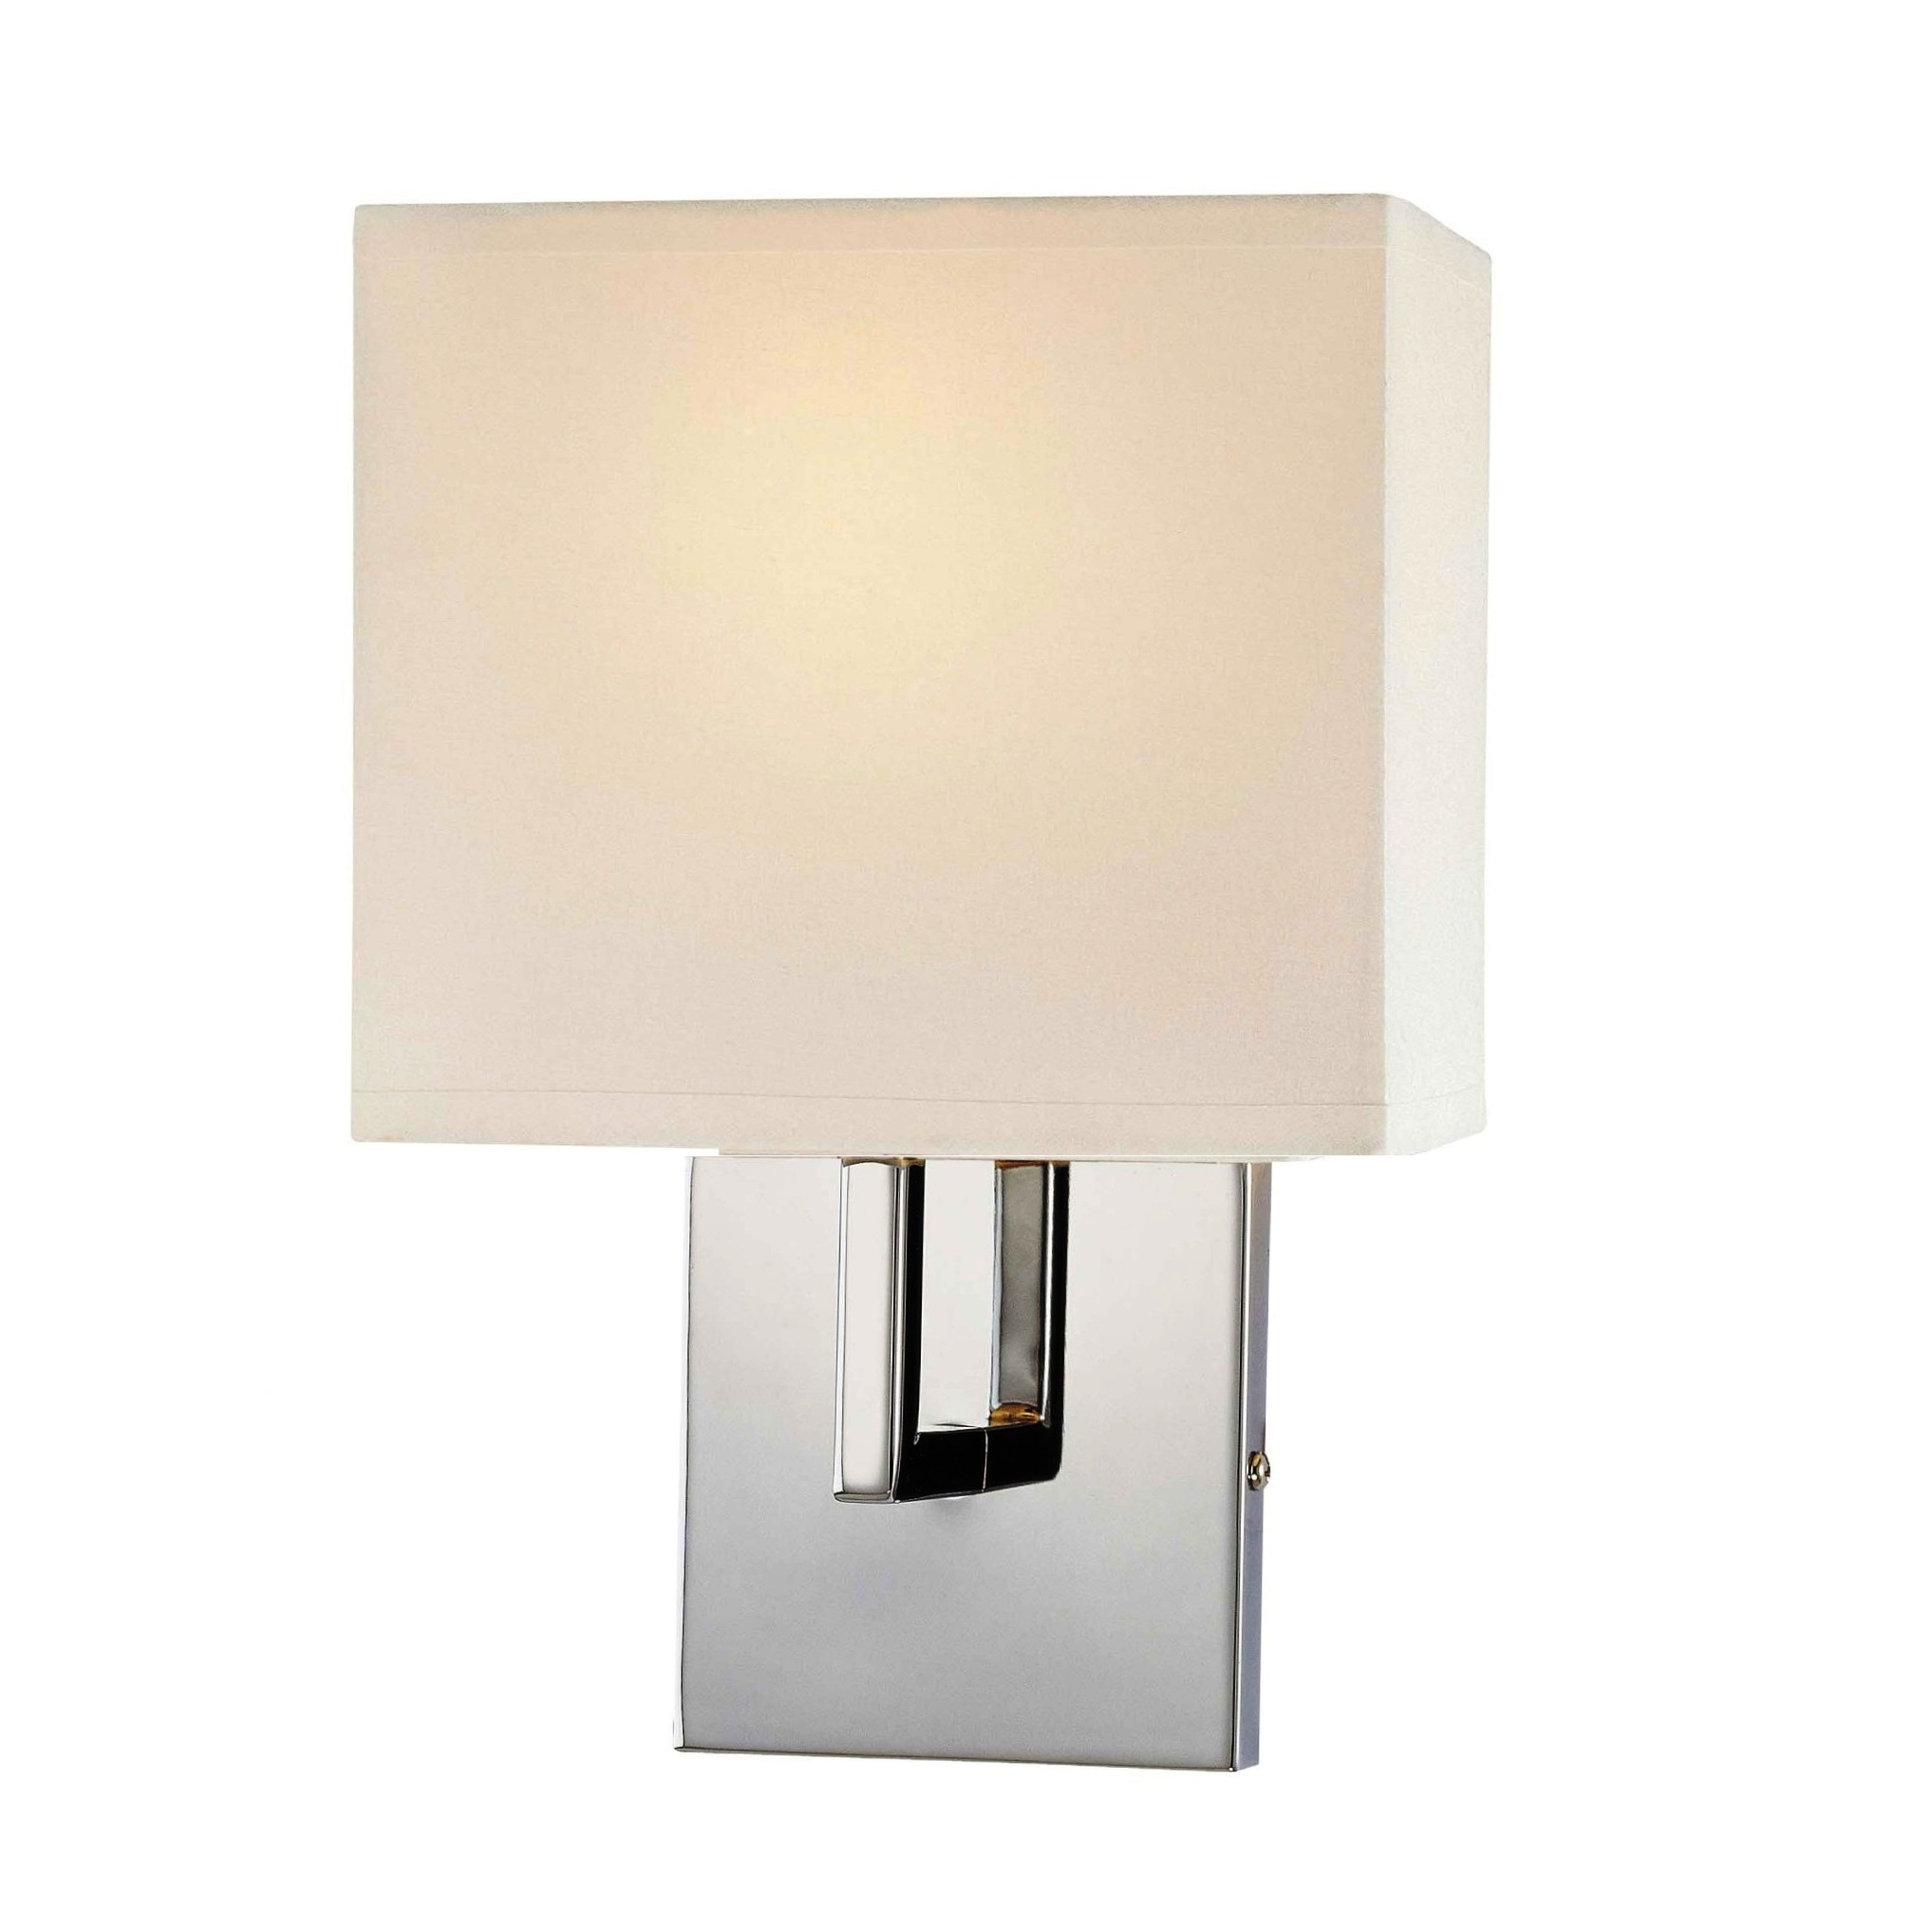 george kovacs 1 light wall sconce in chrome l brilliant. Black Bedroom Furniture Sets. Home Design Ideas